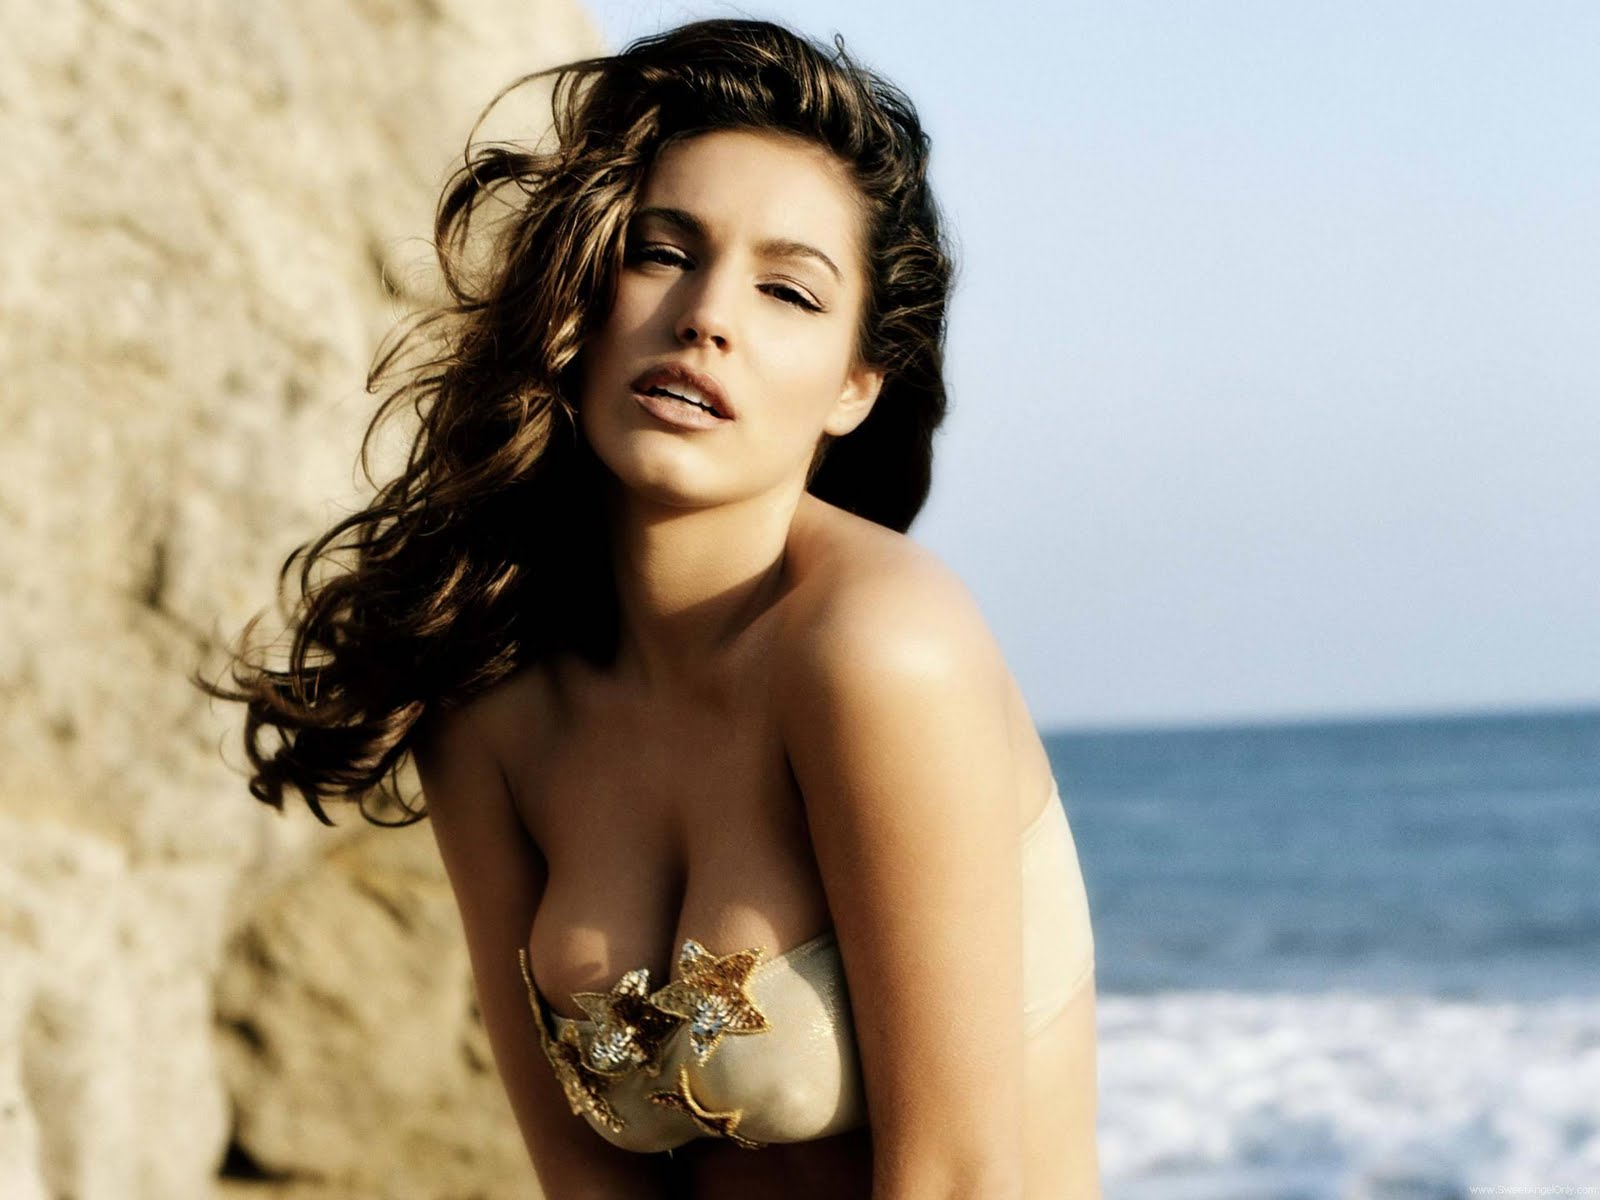 http://1.bp.blogspot.com/-1MUGX0y1lcE/TeEdy4--7RI/AAAAAAAAFwI/GY6eC973eD4/s1600/kelly_brook_a_HD_Wallpaper_164.jpg